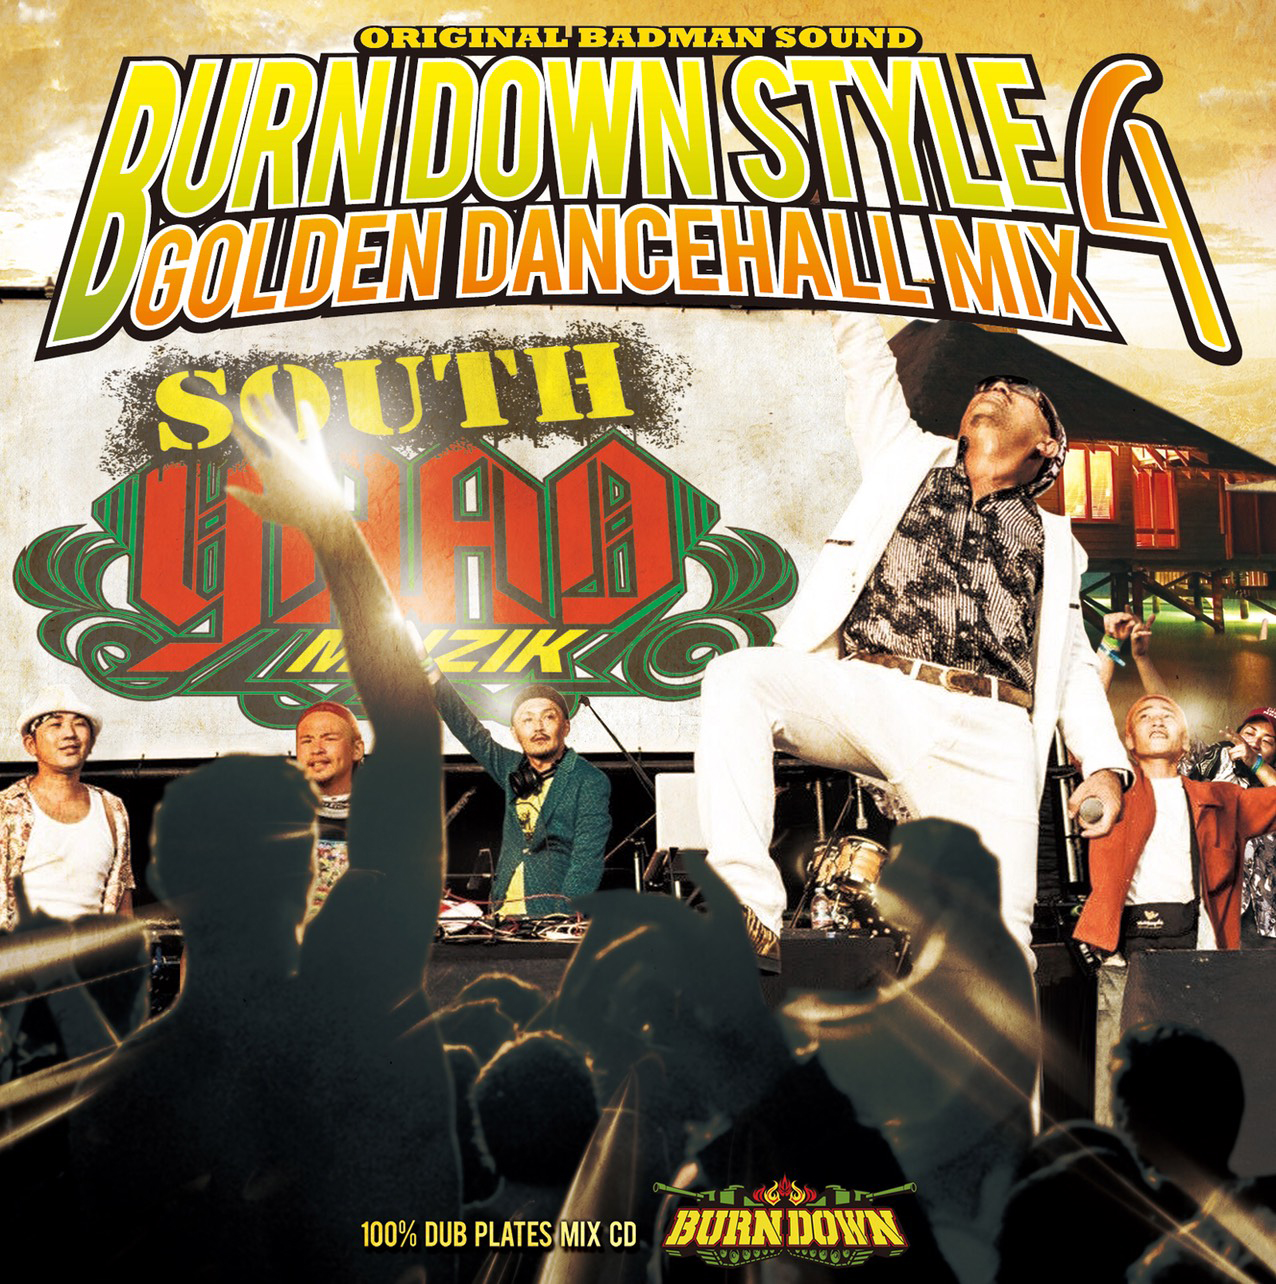 BURN DOWN STYLE -GOLDEN DANCEHALL MIX 4-